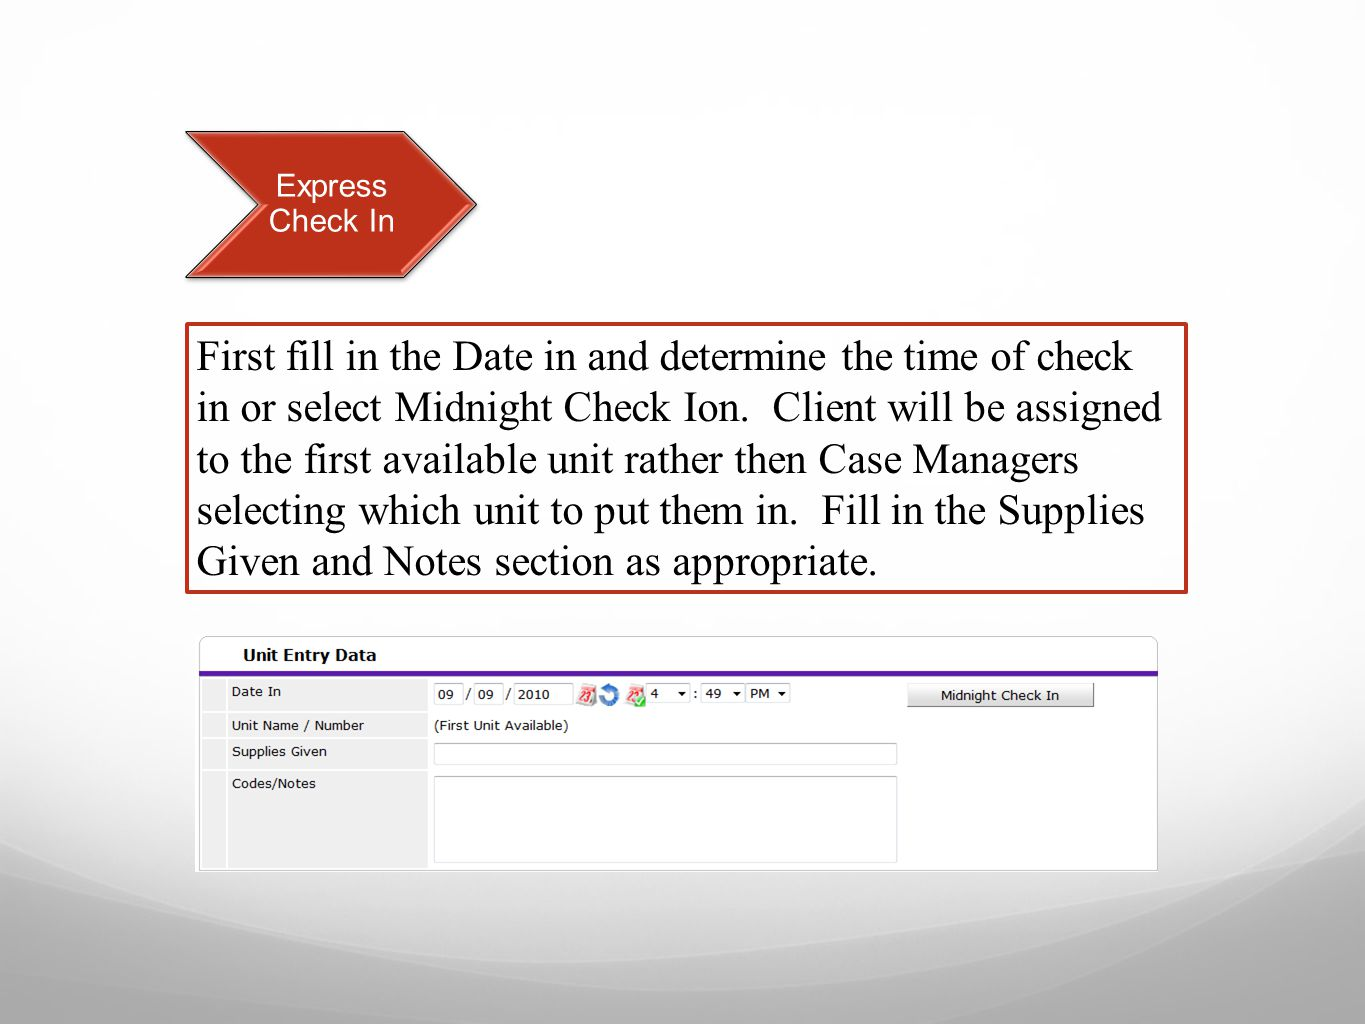 Express Check In First fill in the Date in and determine the time of check in or select Midnight Check Ion.